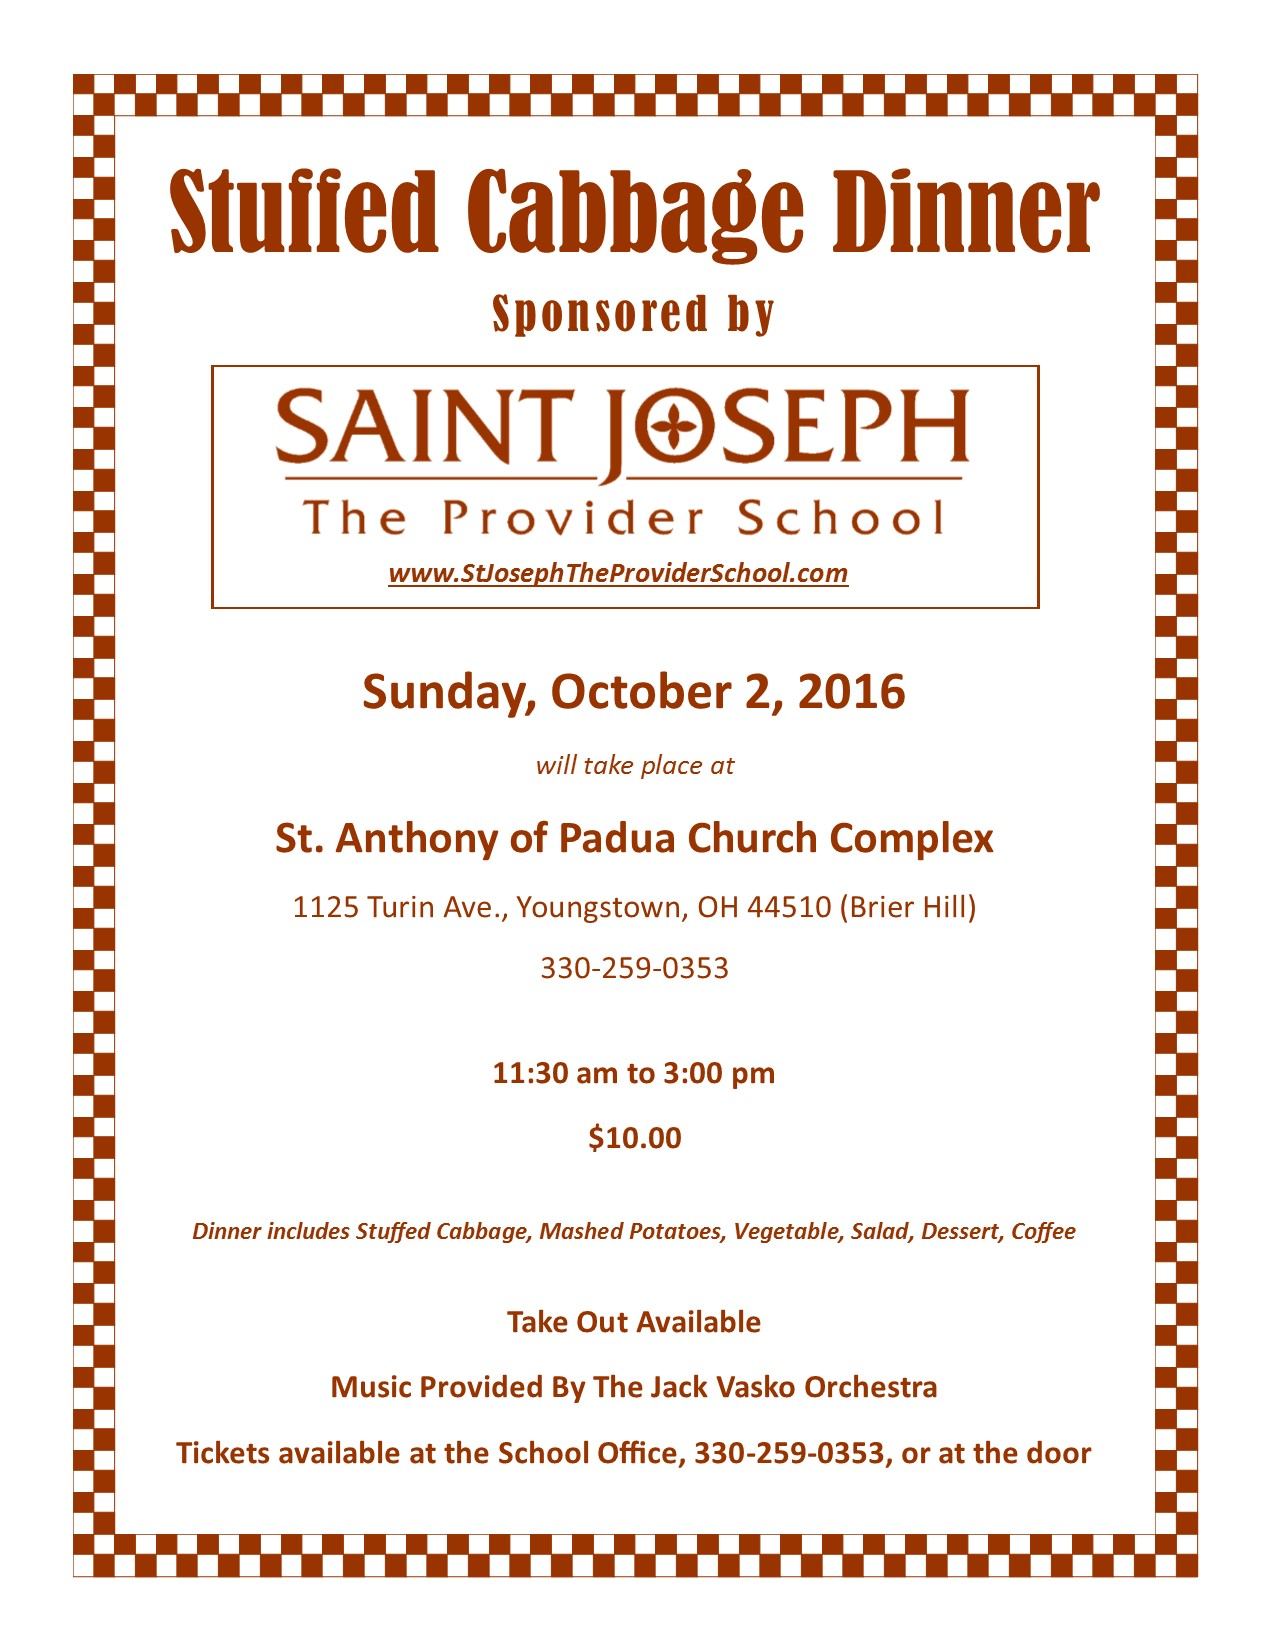 color-fall-2016-stuffed-cabbage-dinner-flyer